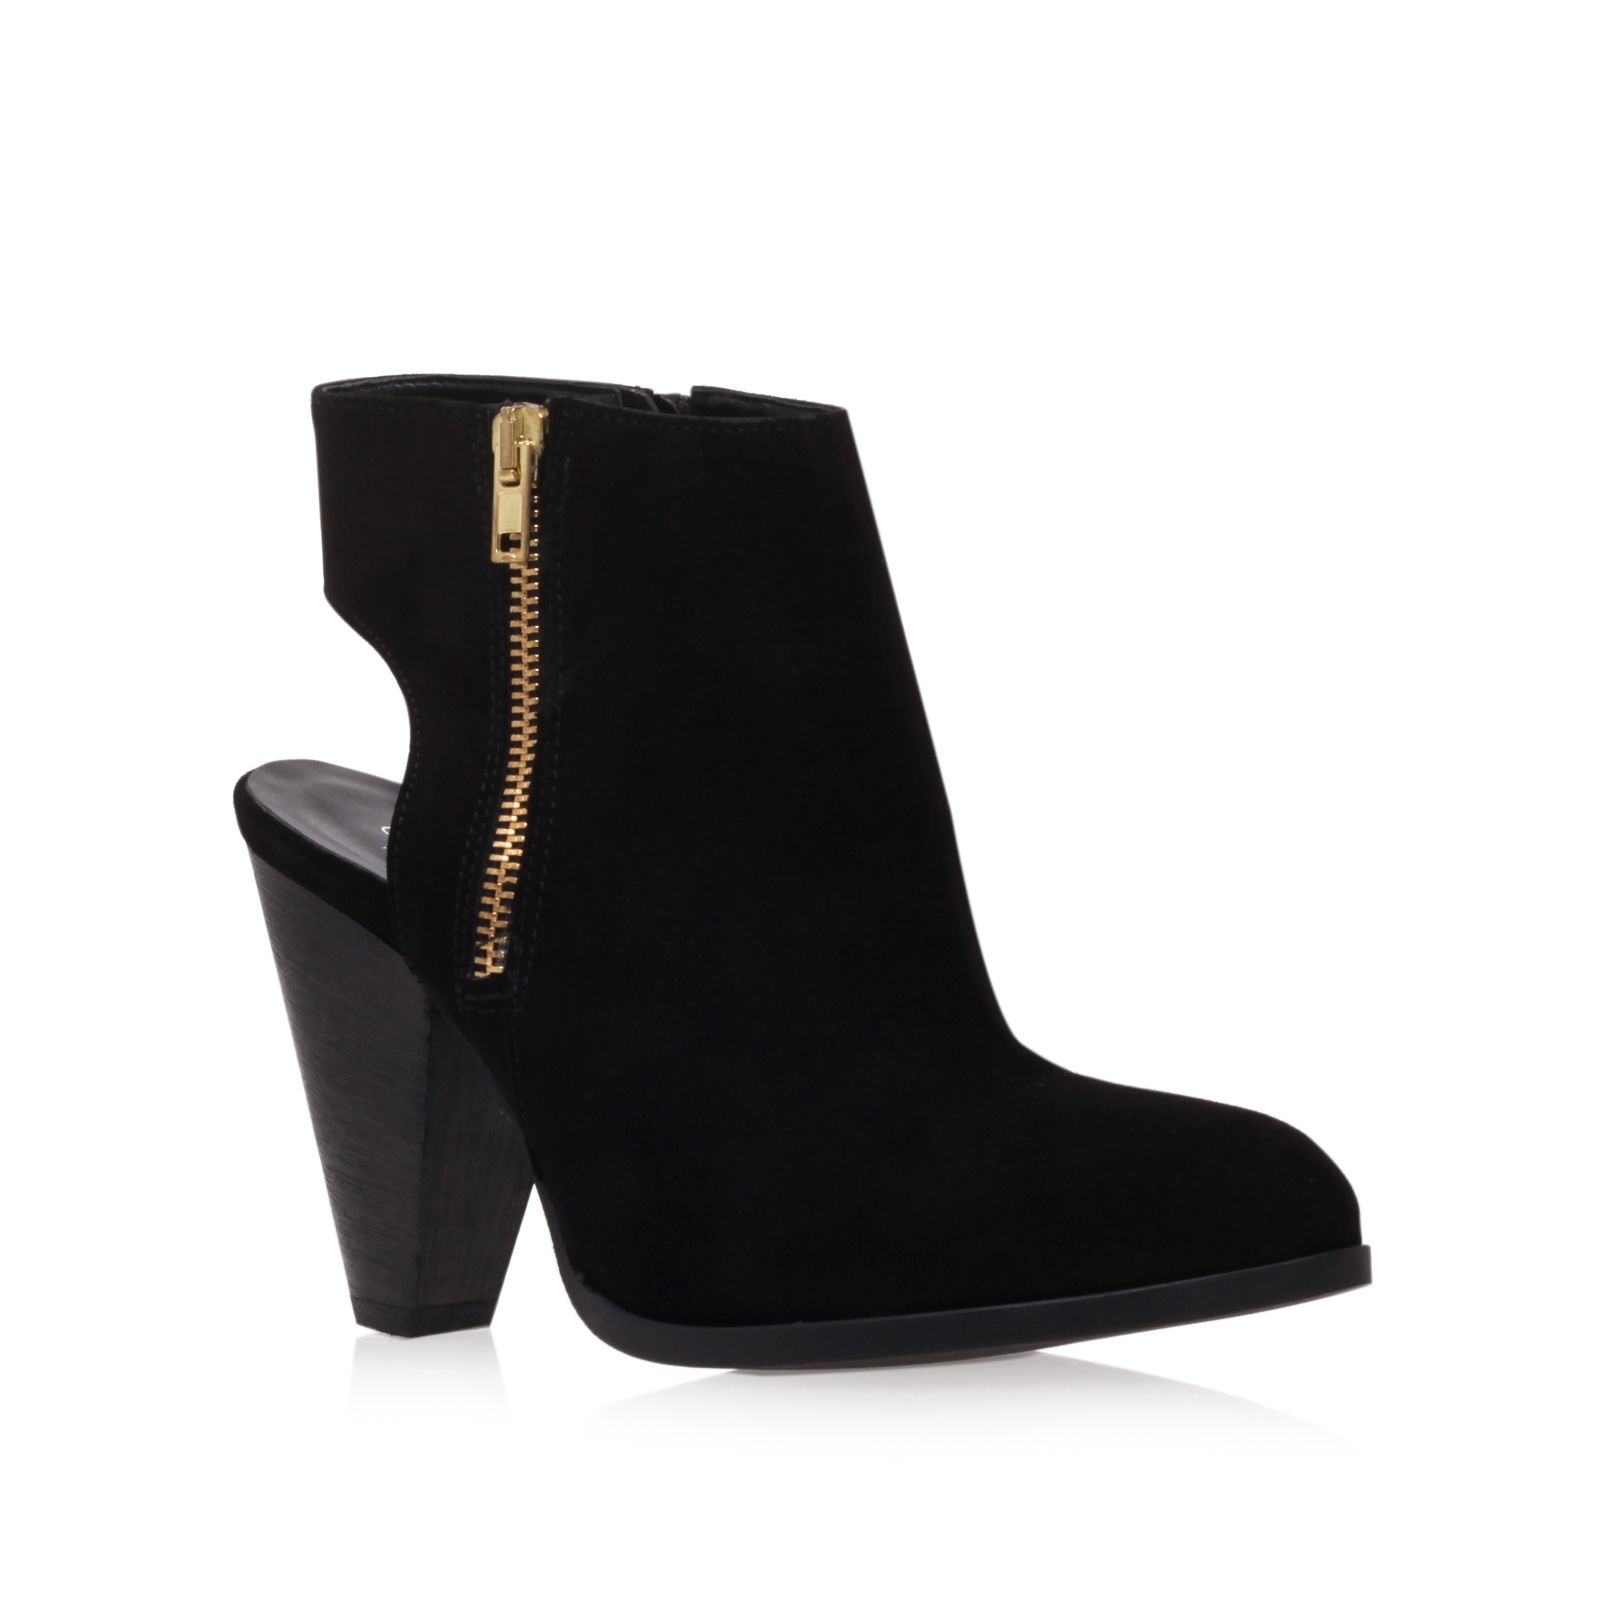 Shy high heel ankle boots